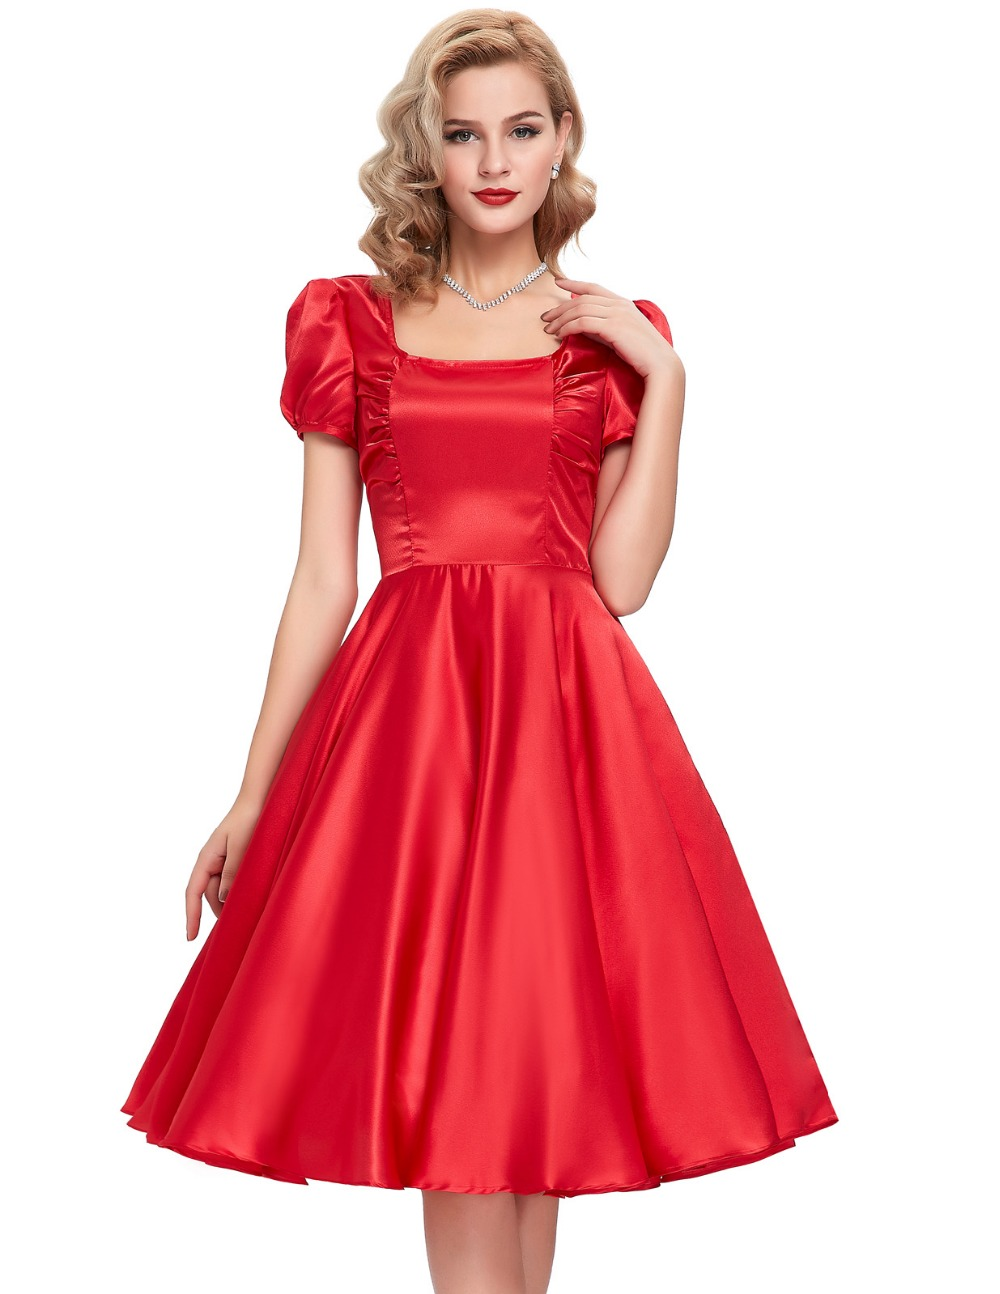 Elegant  WomensDresses2016RobePinupBigSwingLongSleeve50sVintageDress